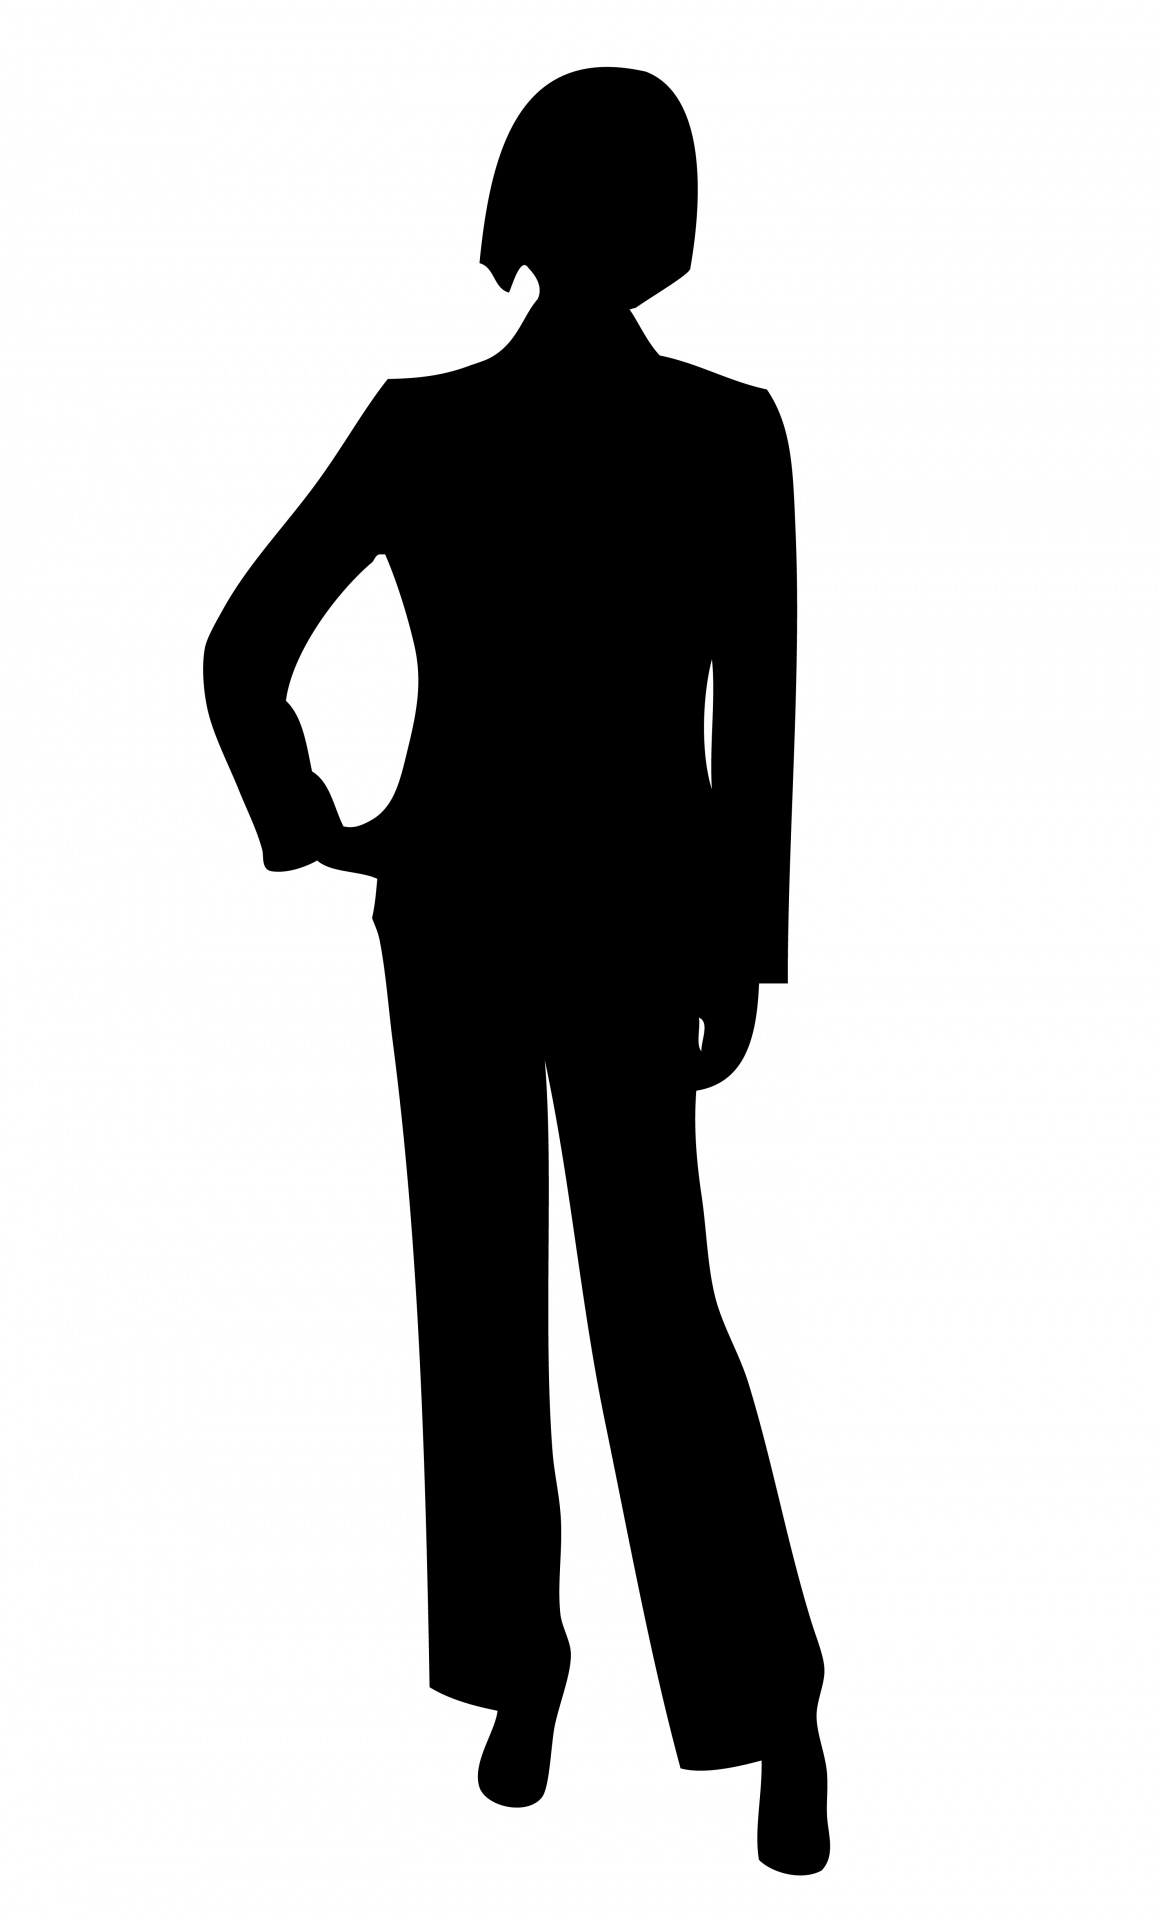 Shaow clipart business person Clipart Domain Business Woman Silhouette